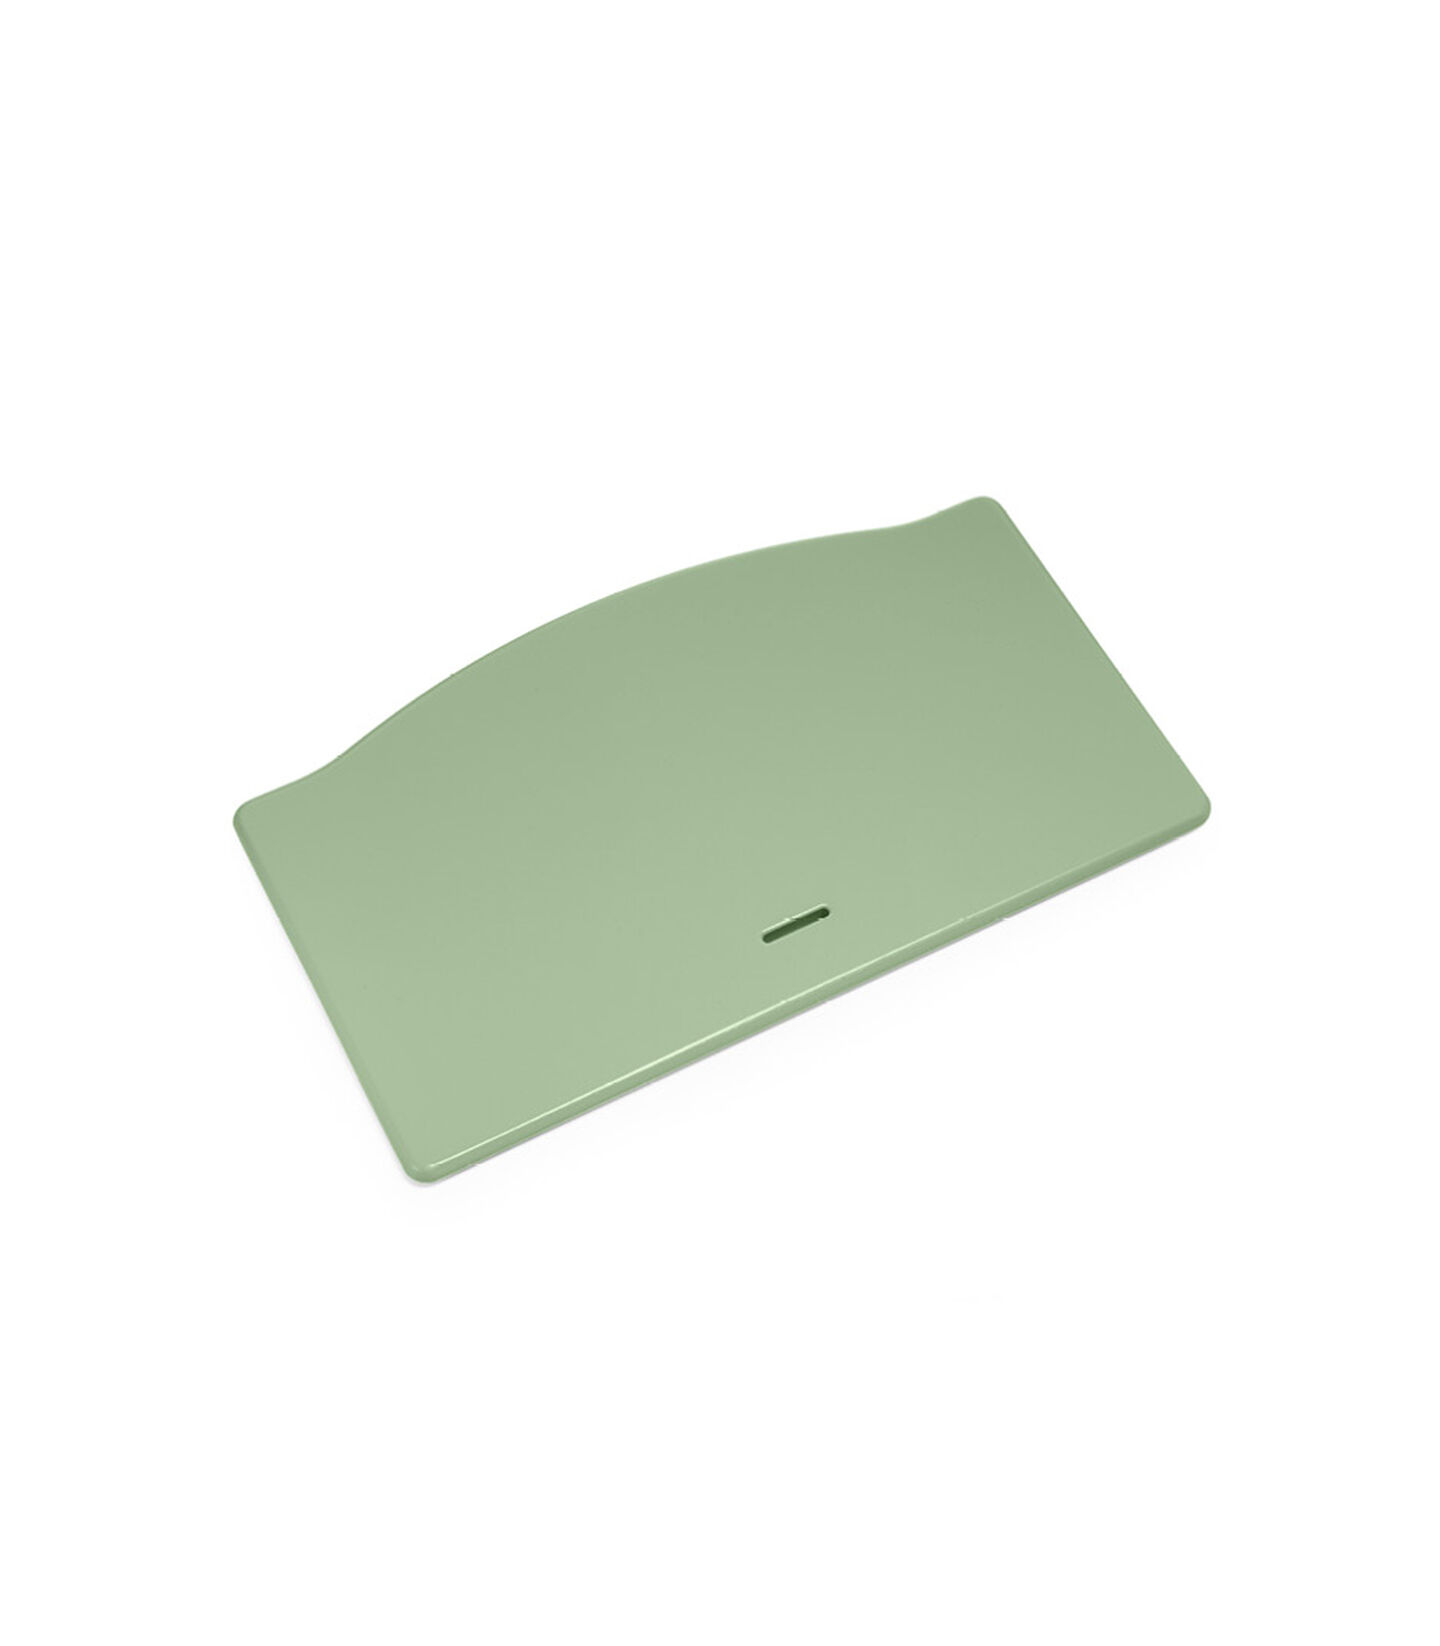 Tripp Trapp® Seatplate Moss Green, Verde Muschio, mainview